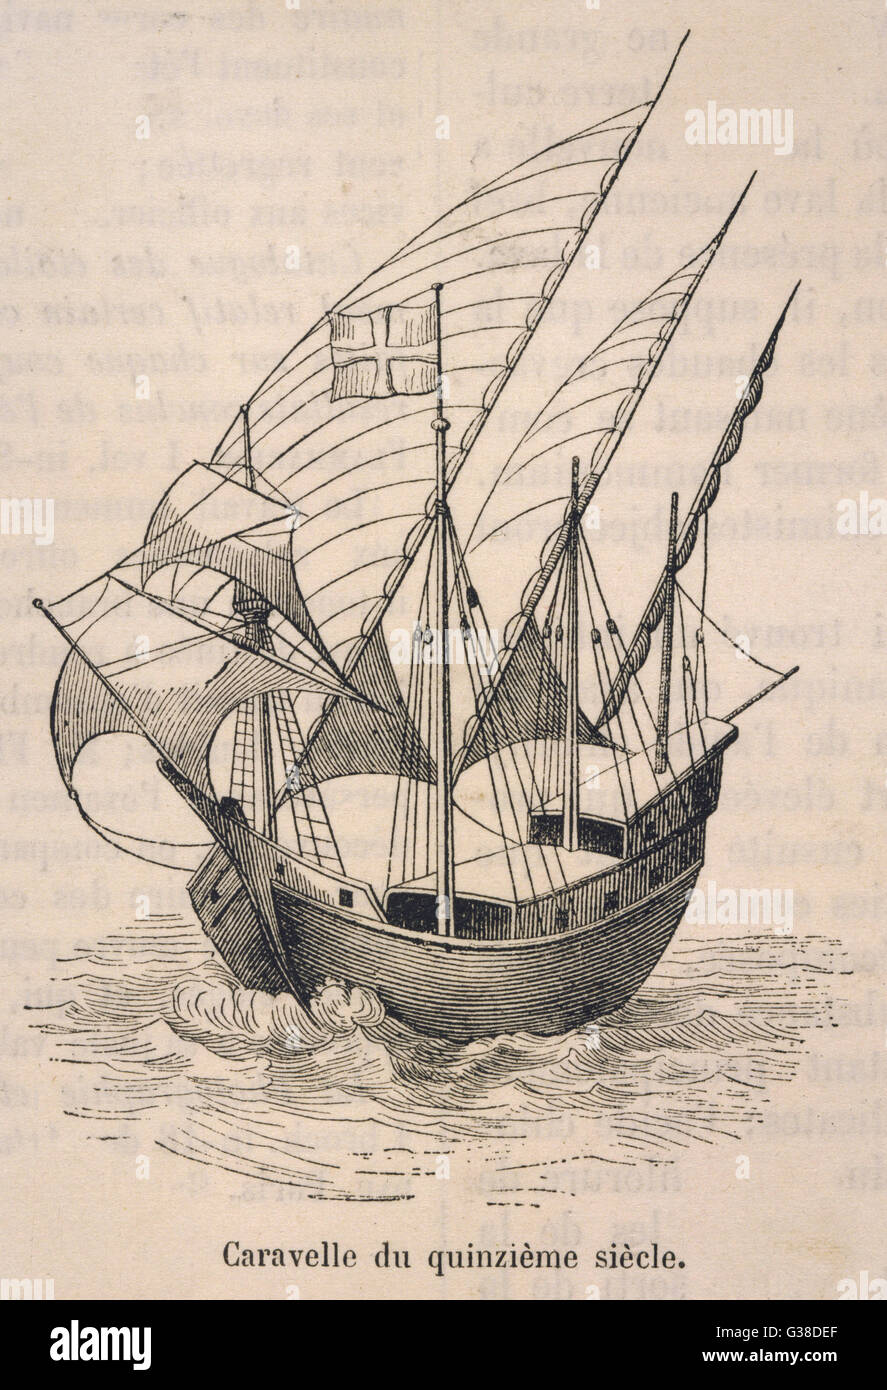 A caravel in full sail          Date: 15th Century - Stock Image